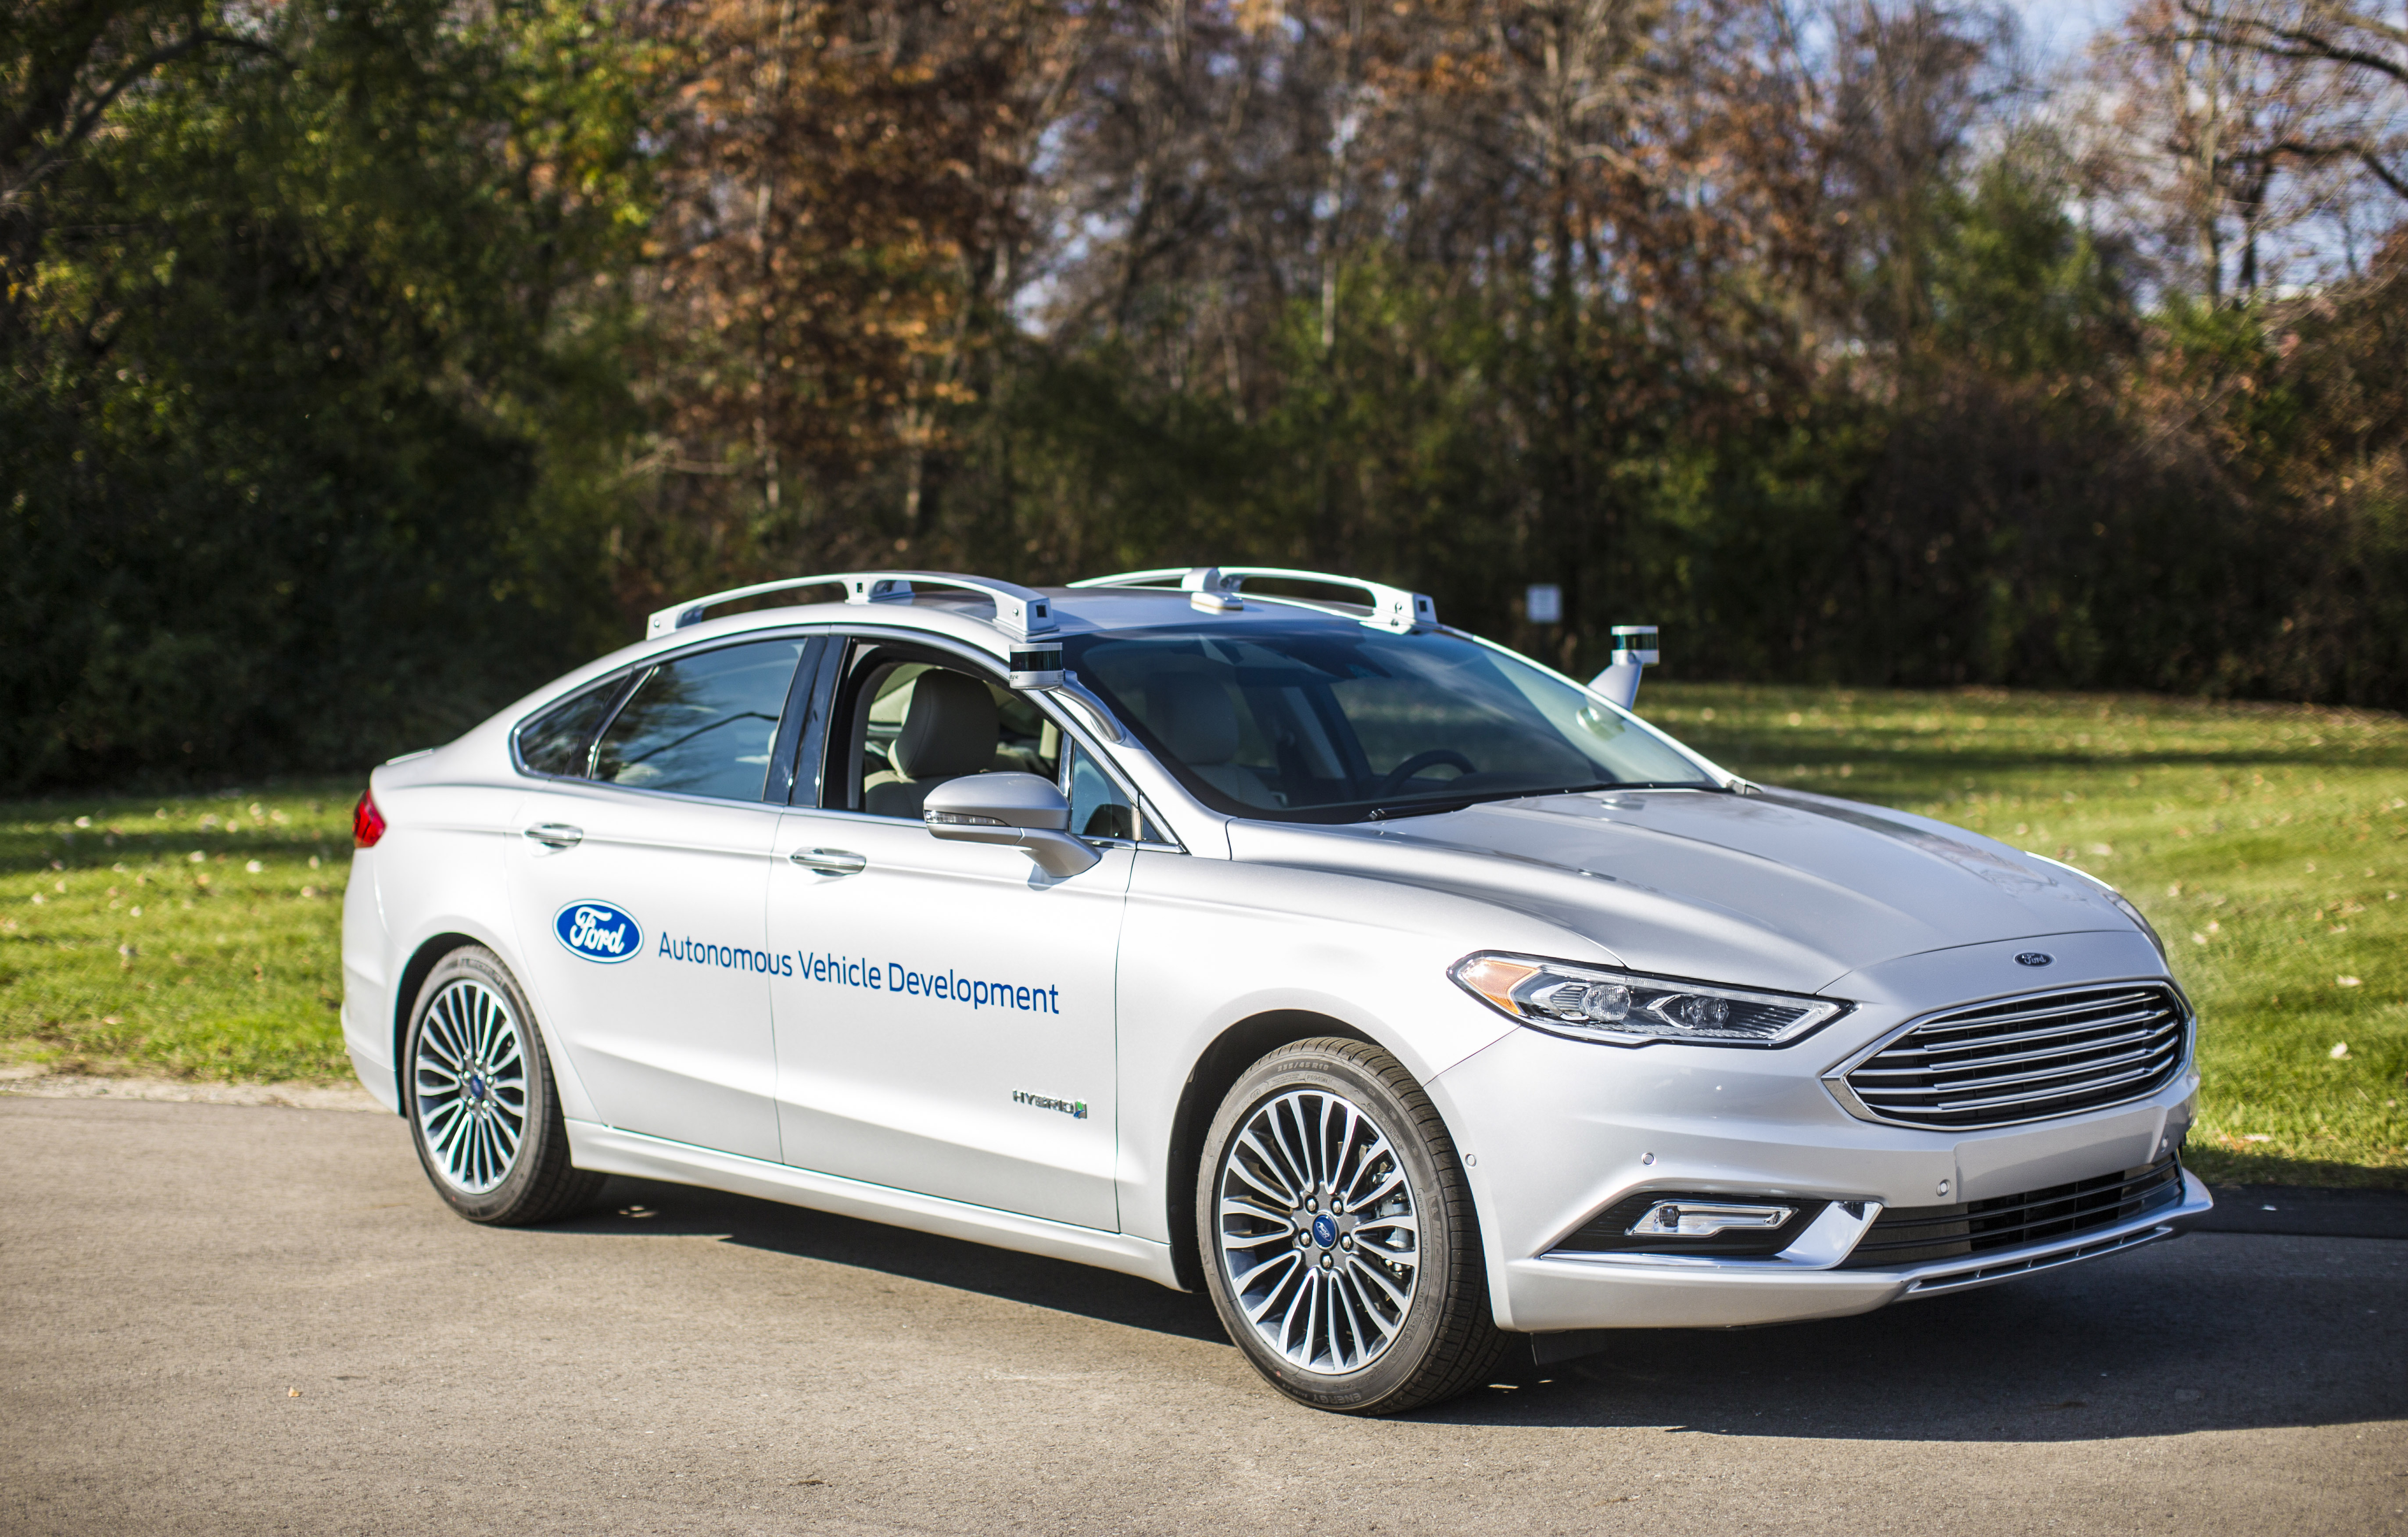 Ford shows off a sleeker self-driving vehicle